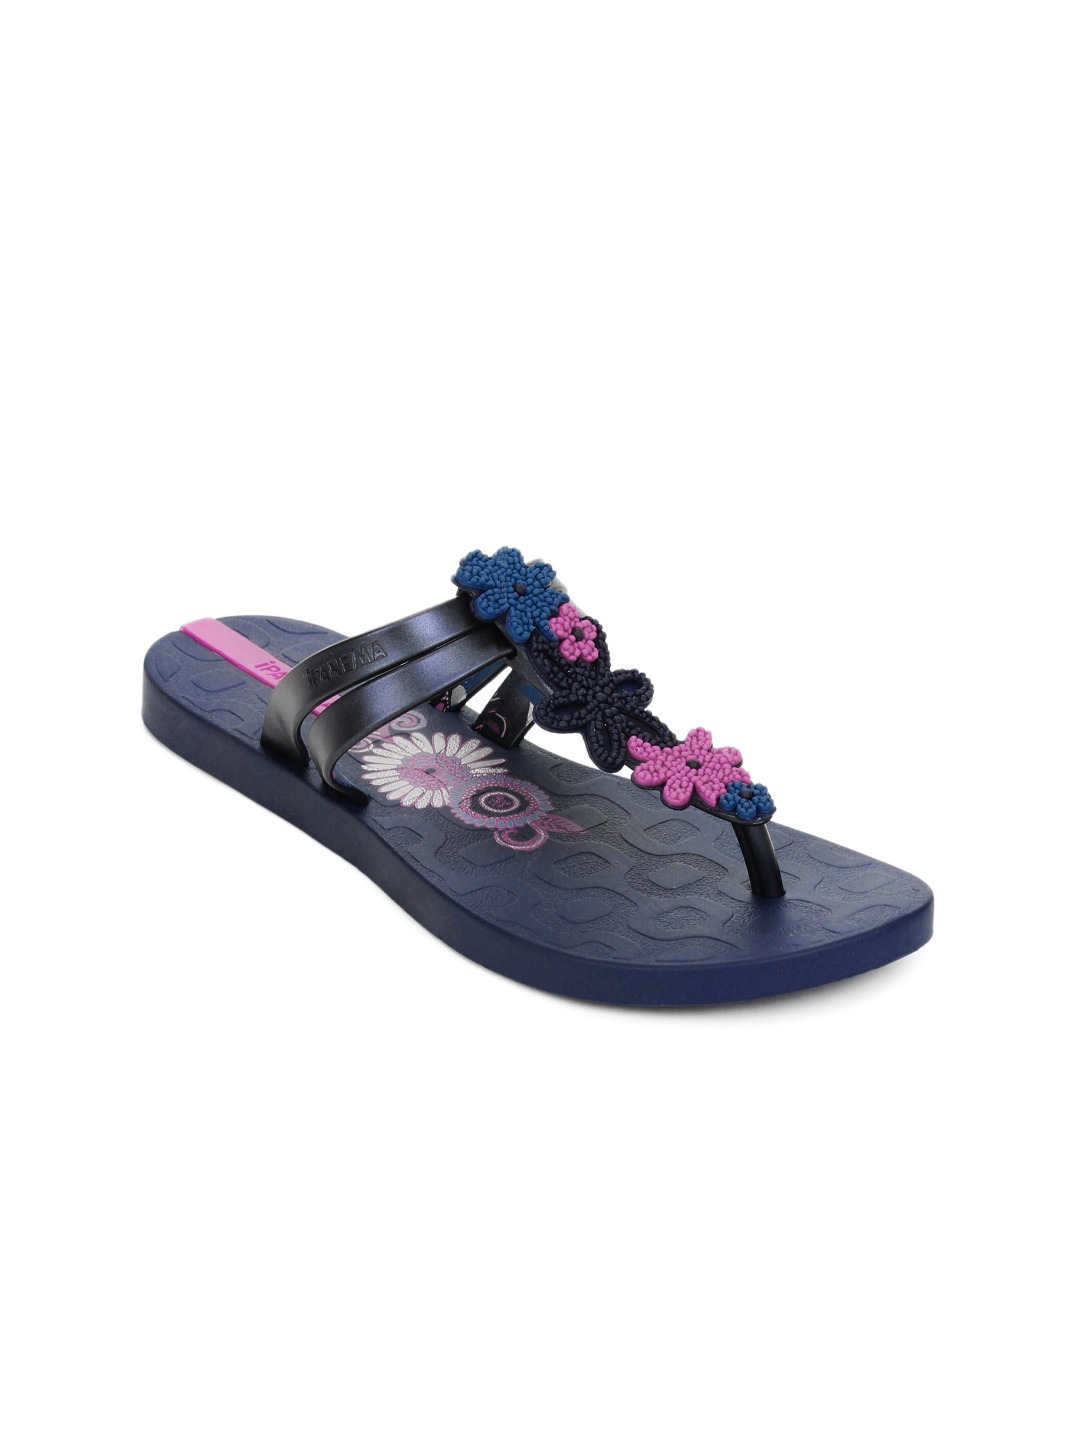 iPanema Women Ritmos Navy Blue Sandals